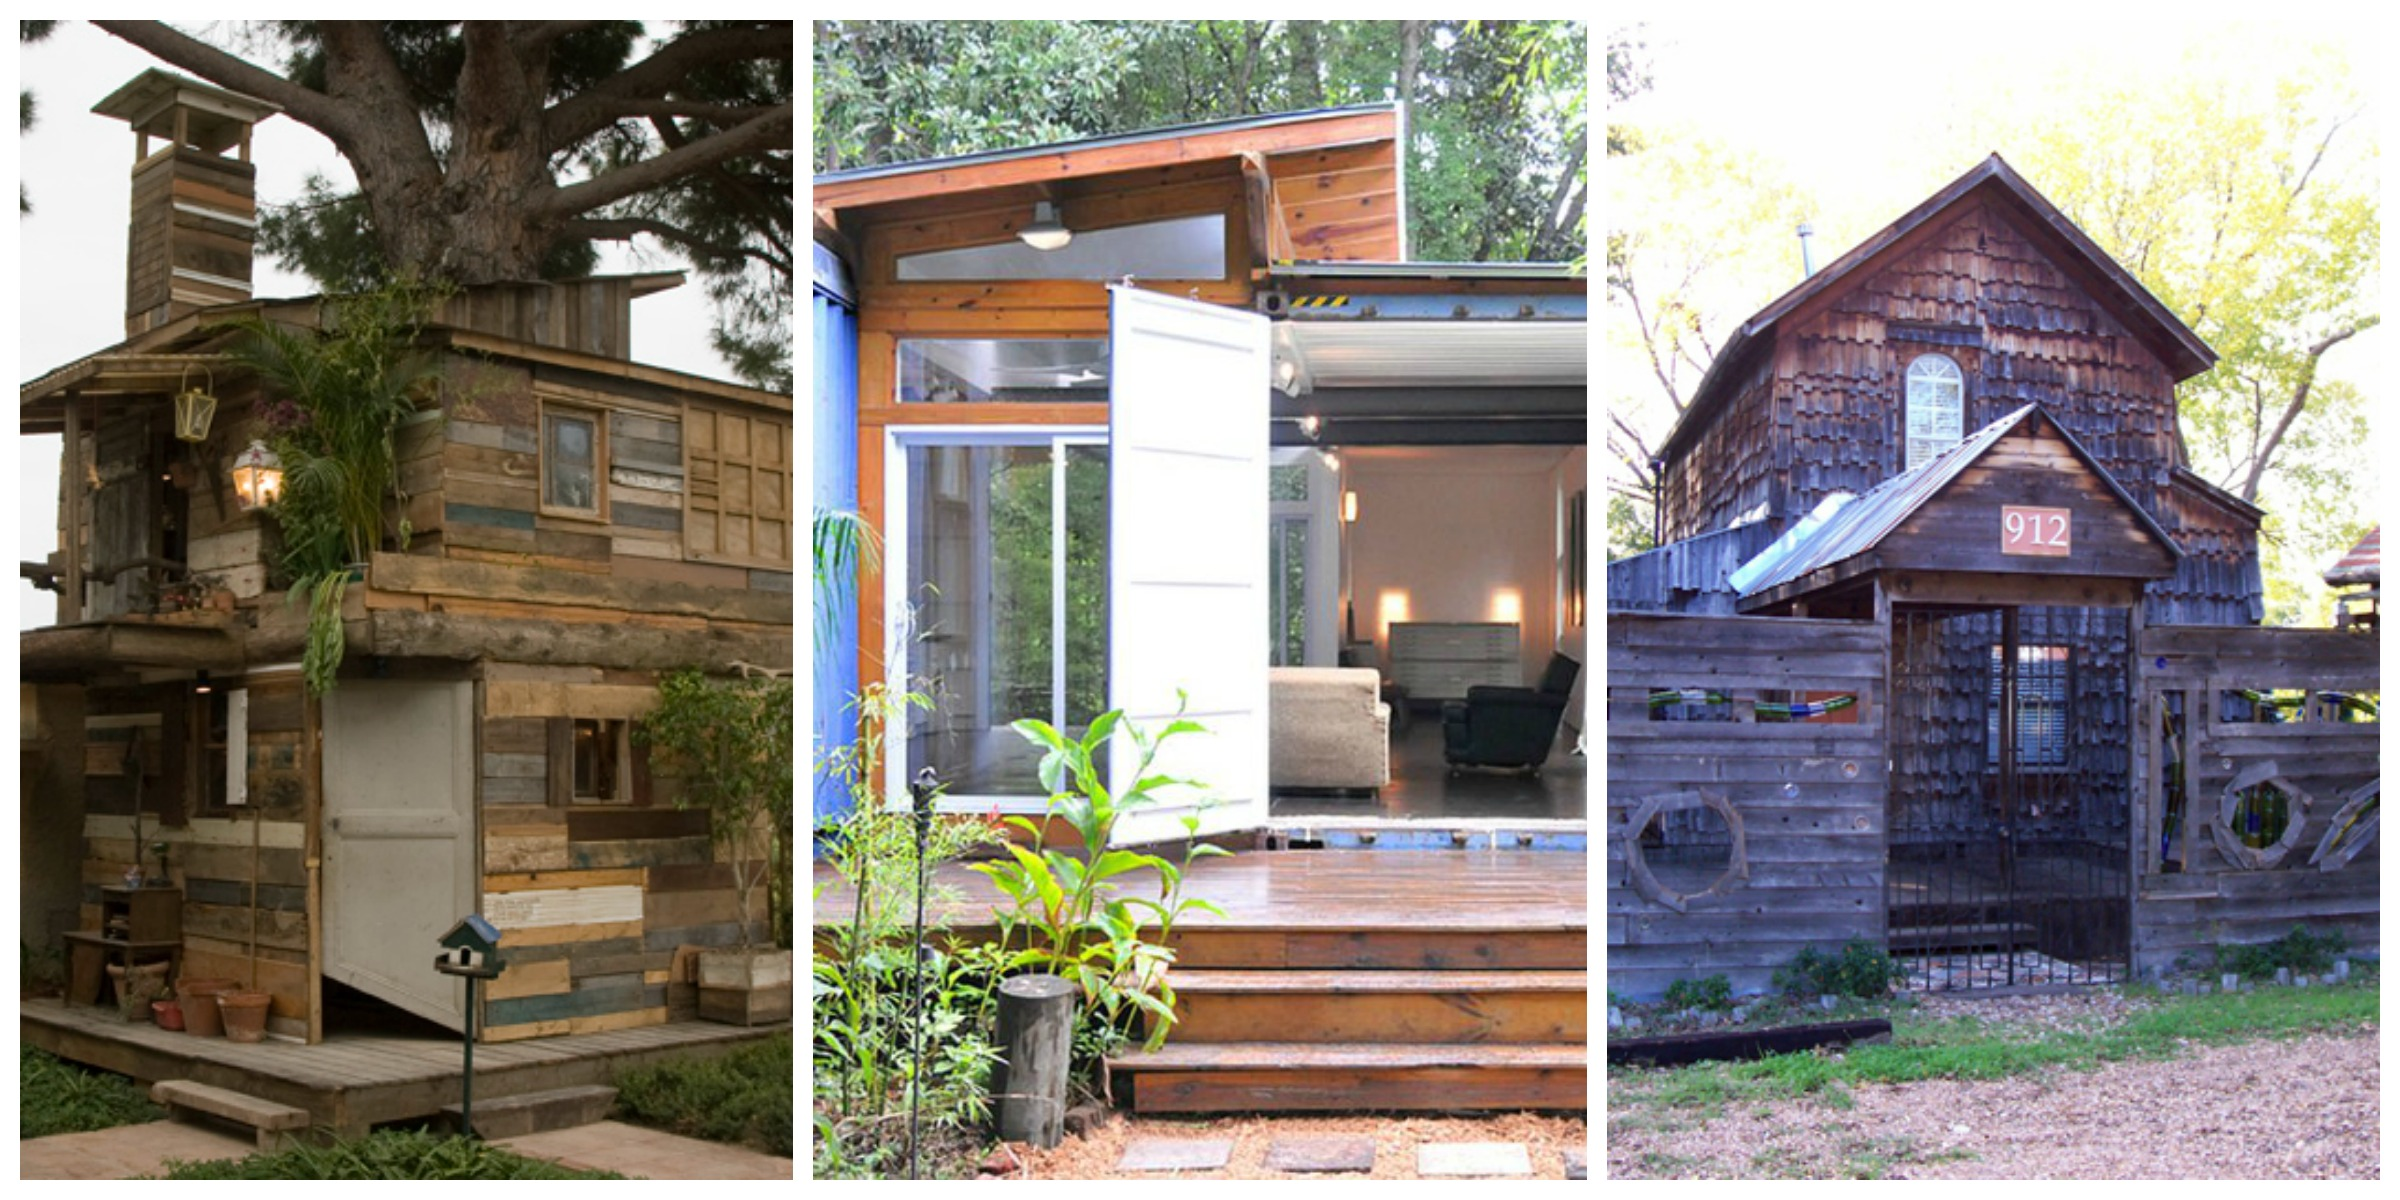 Houses Built From Recycled Materials : Houses made from trash sustainable homes built